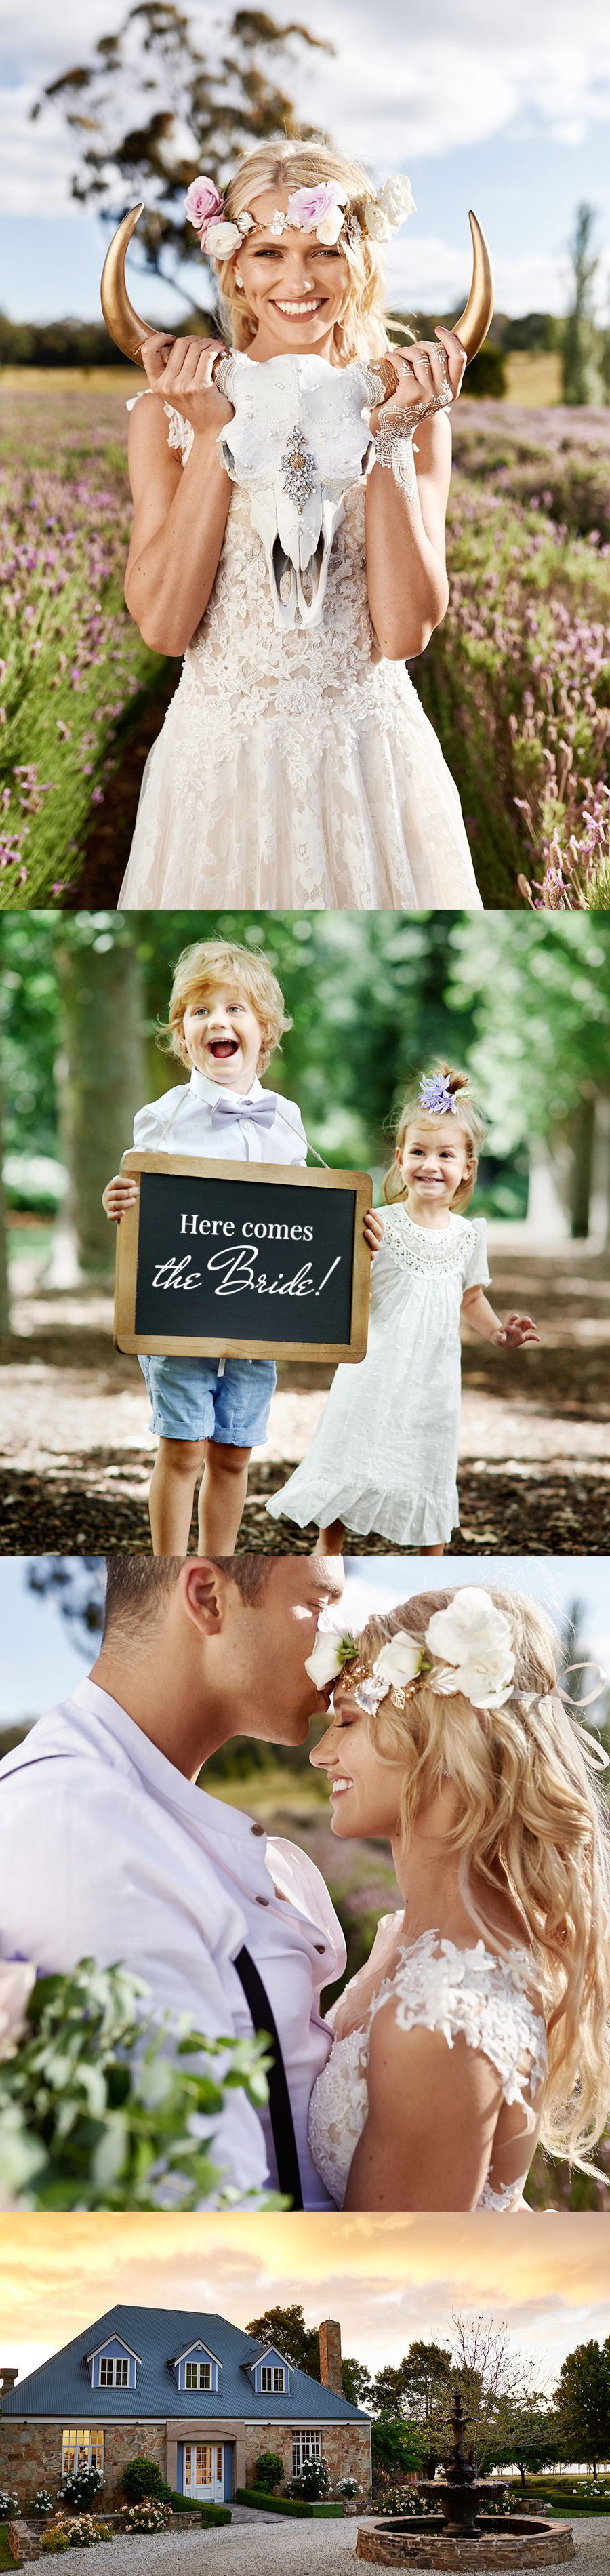 lavender field wedding photo shoot adorn invitations purple gold unique boho luxe inspiration unconventional bride